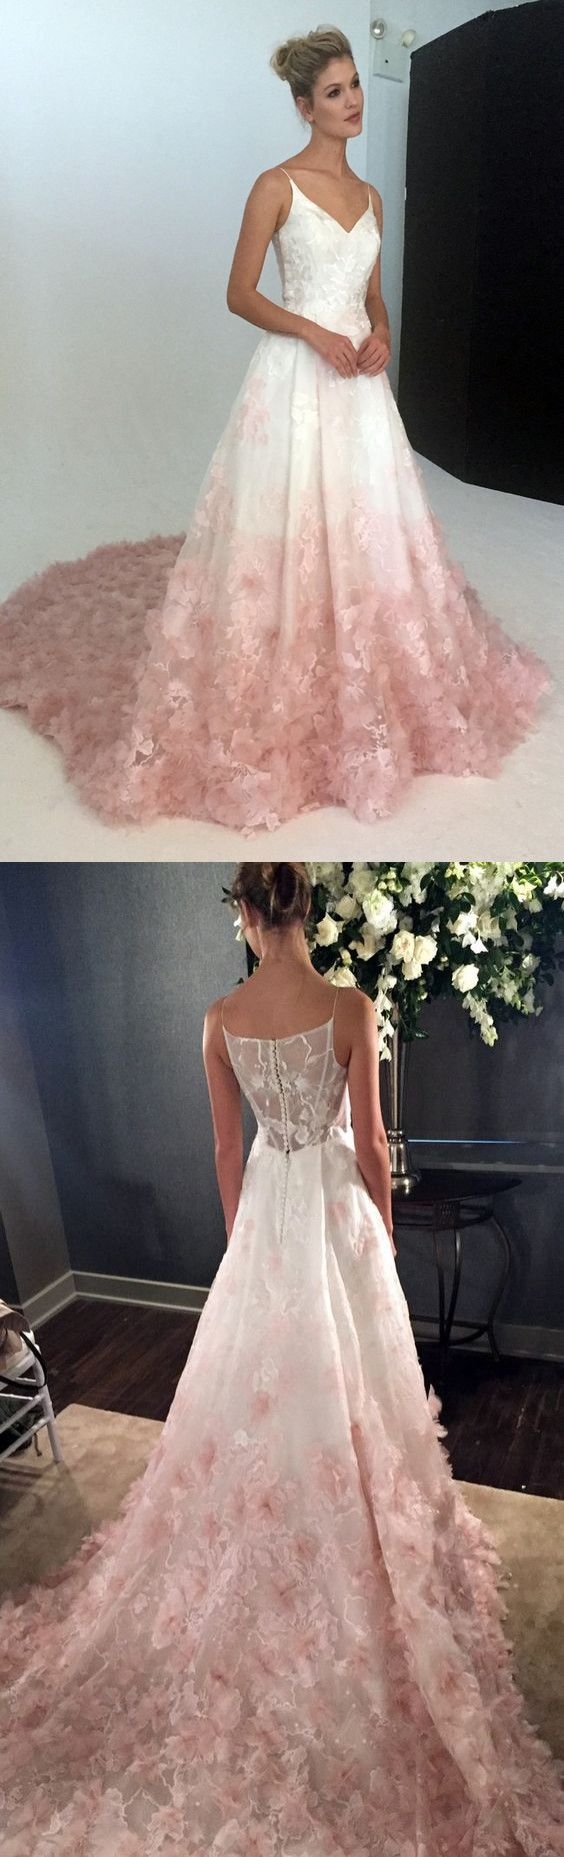 23 best Belle Sposa images on Pinterest